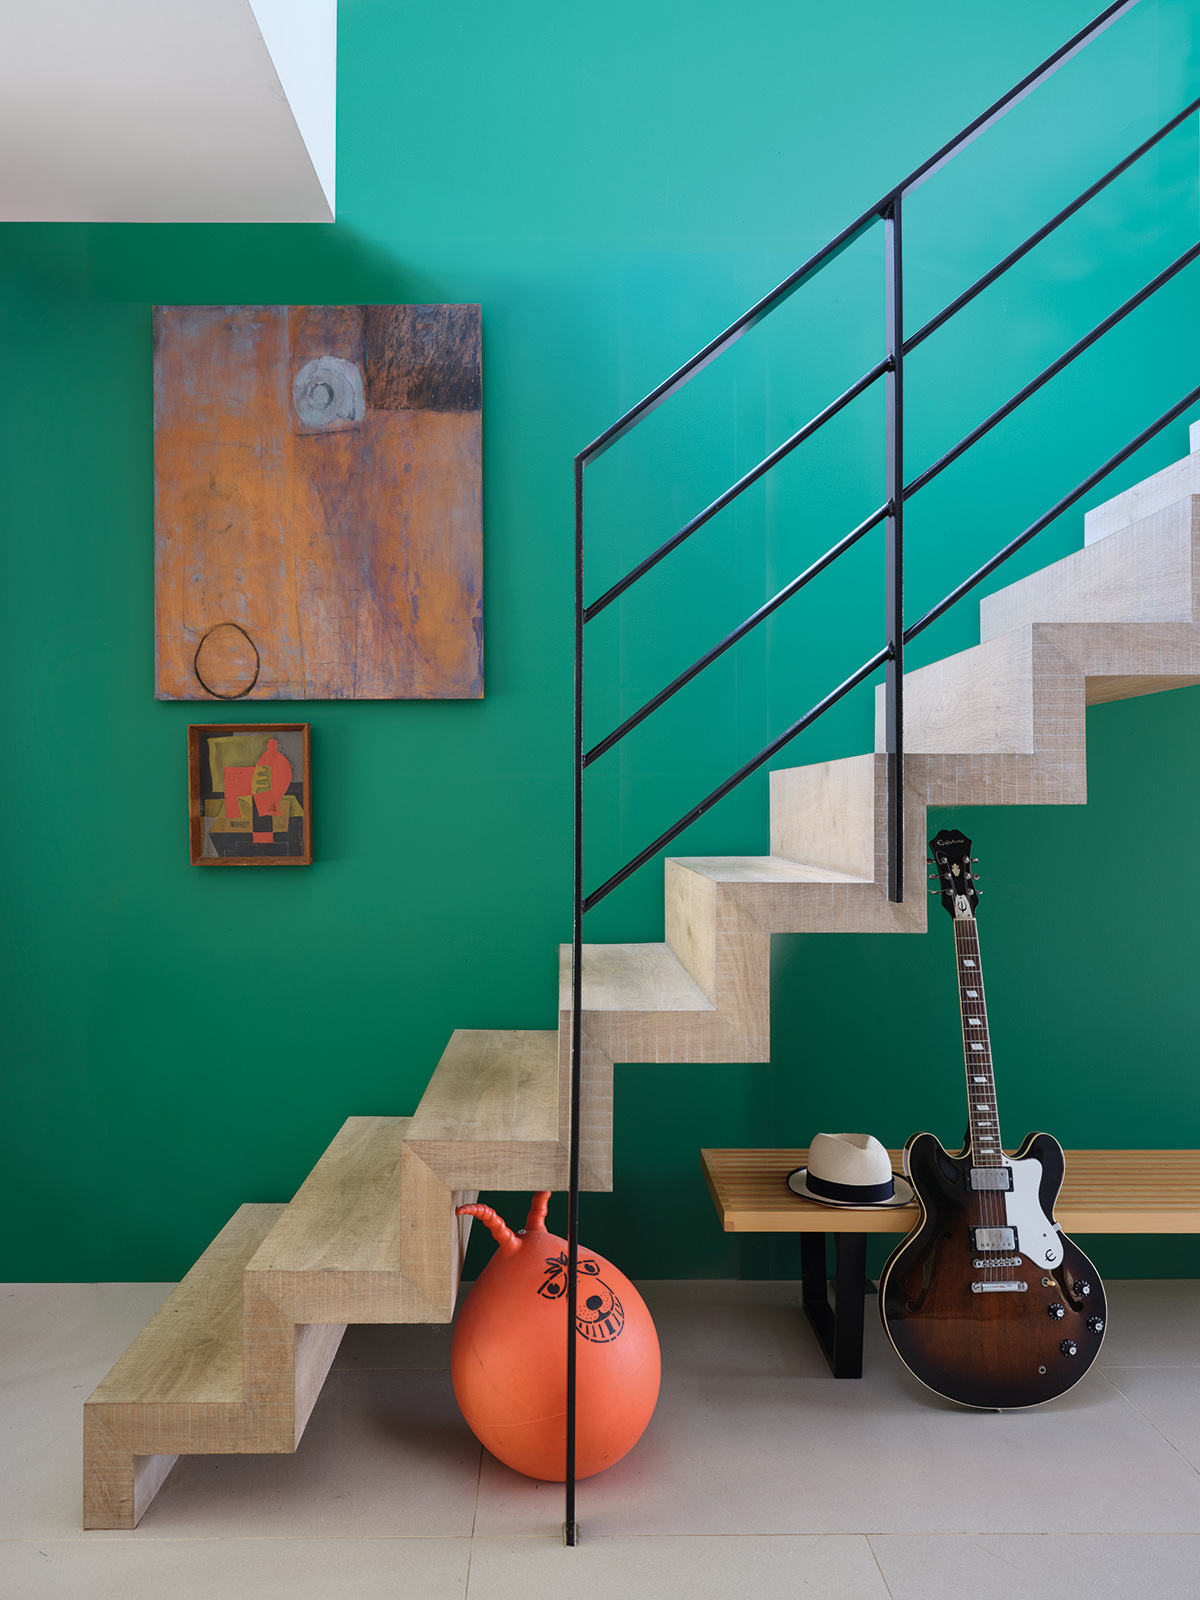 Interior Designer Sophie Robinson takes a look at the new paint collection by Farrow & Ball and the Natural History Museum. The Verdigris Green is used in the entrance hall with a modern black metal bannister yet creates a welcoming space. #sophierobinson #farrowandball #entrancehall